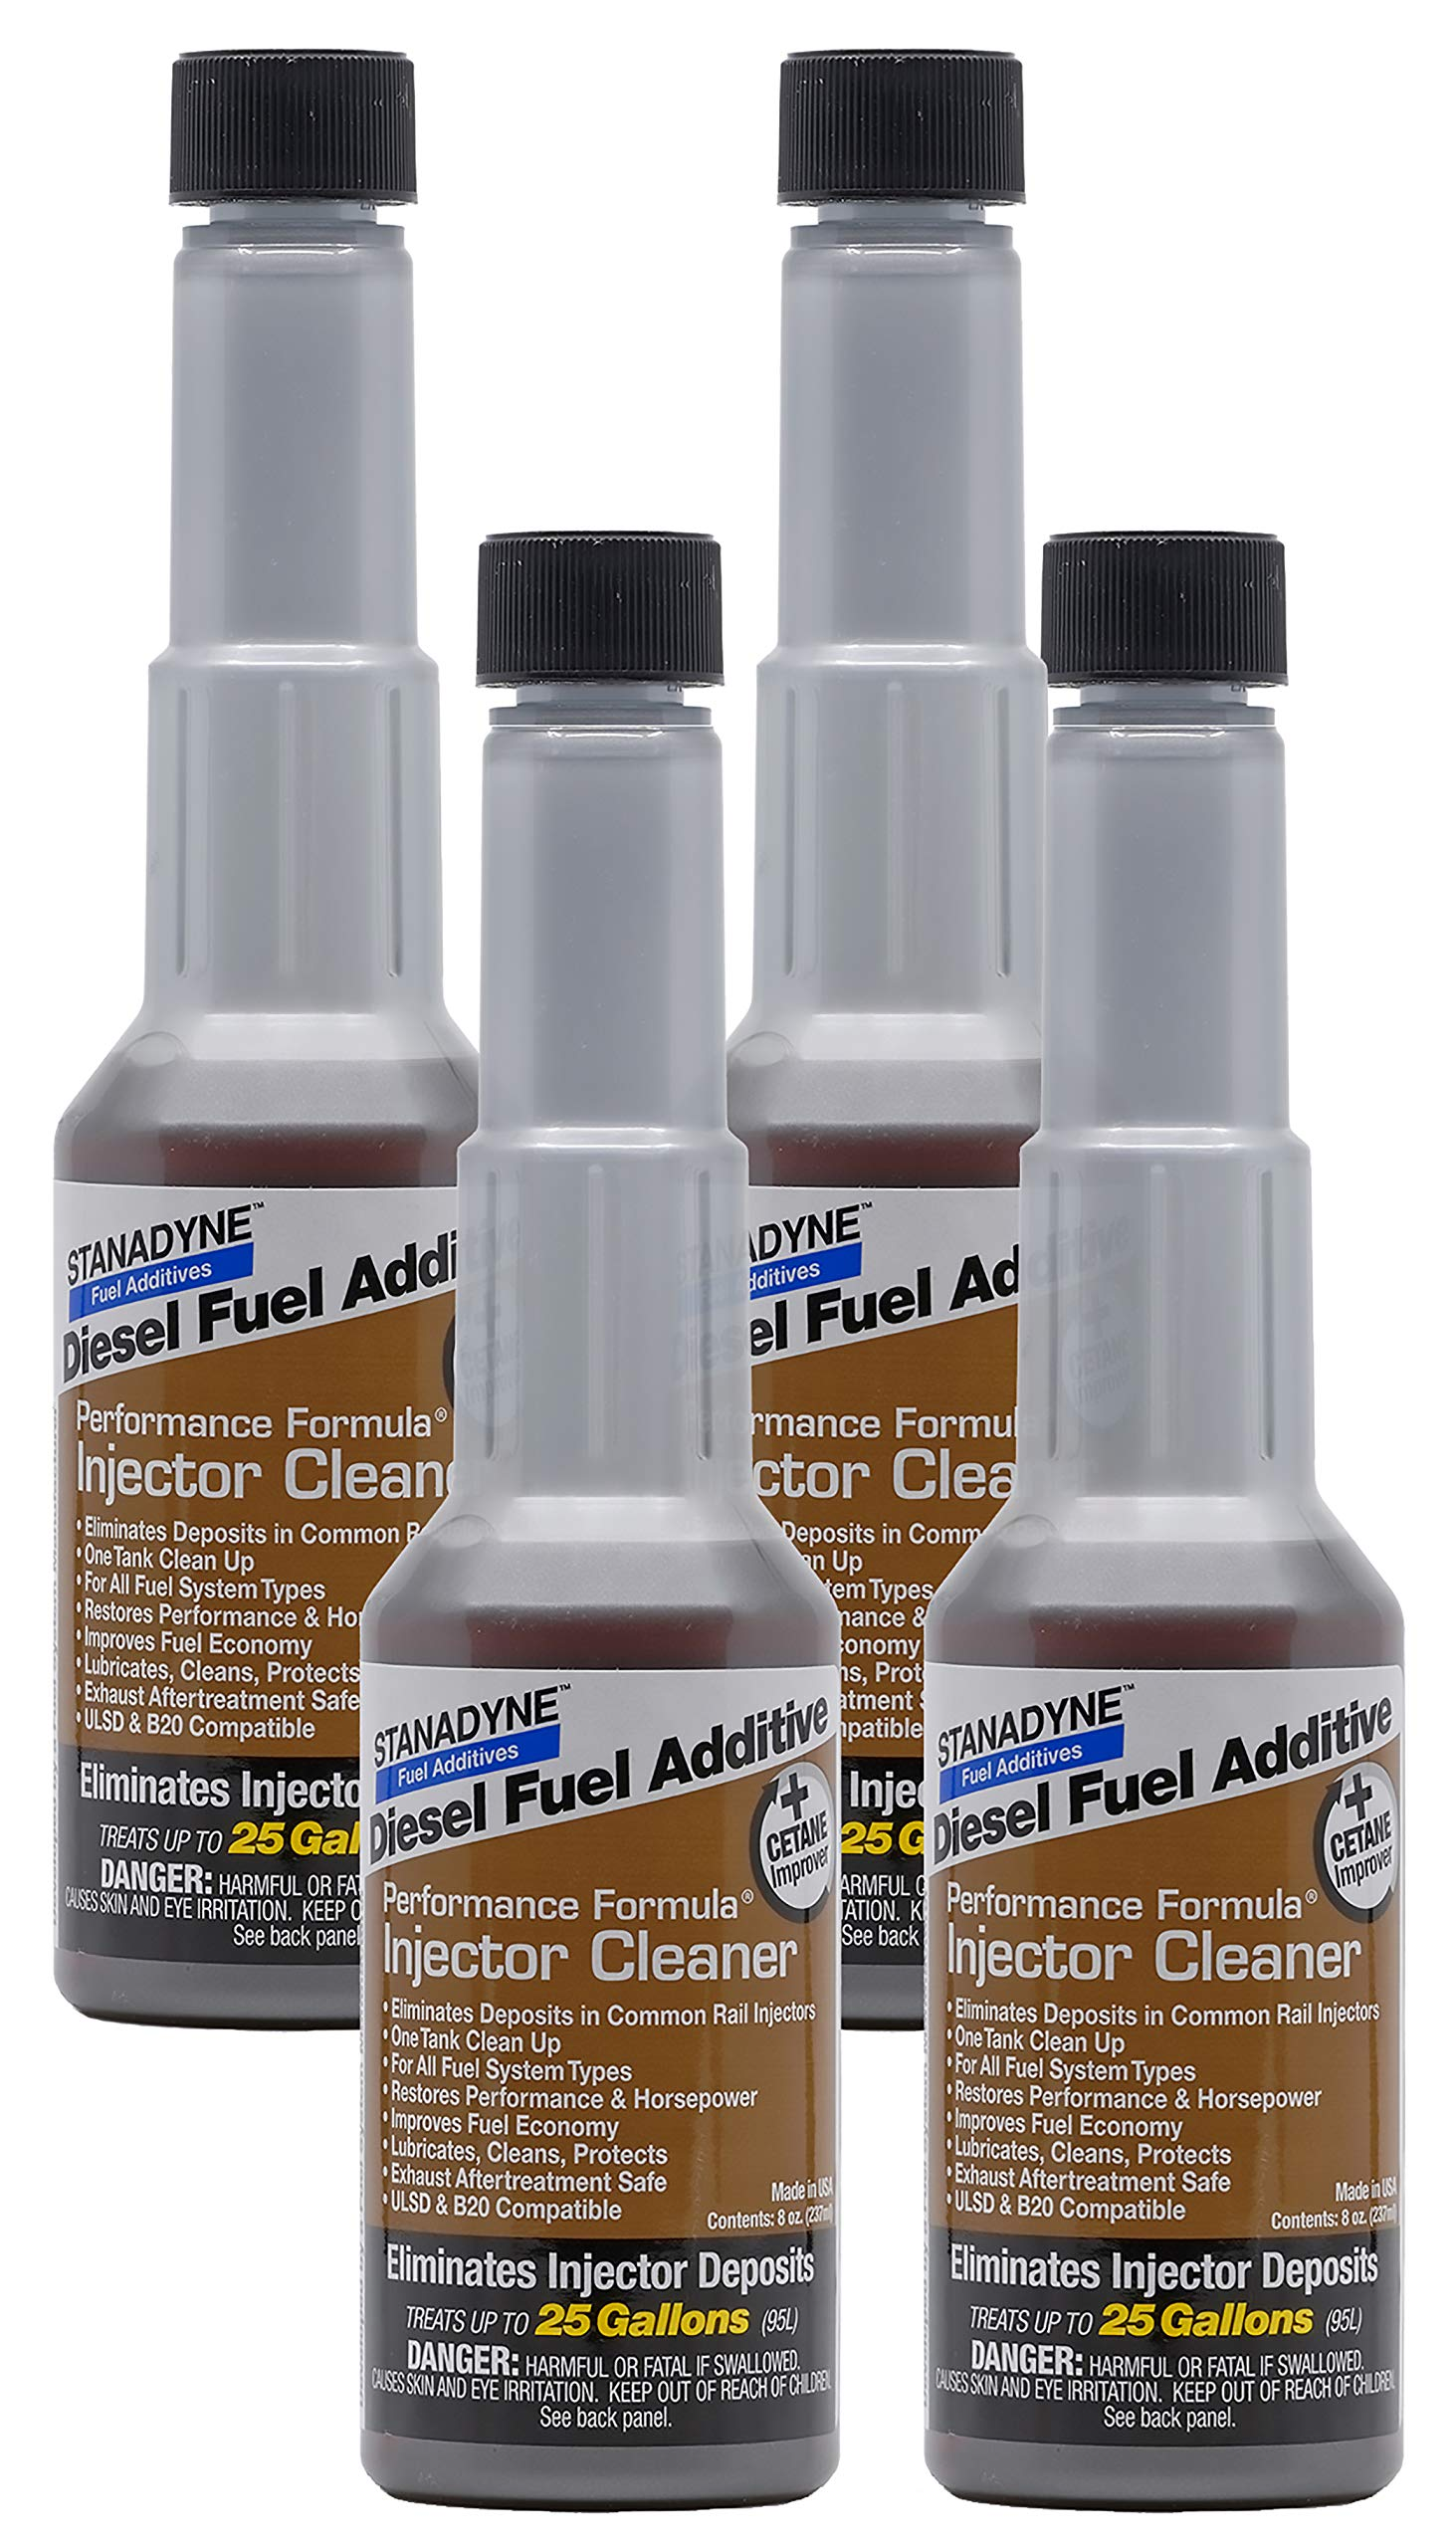 Stanadyne Performance Diesel Injector Cleaner QTY of 4 - 8oz bottles #43562 by Stanadyne